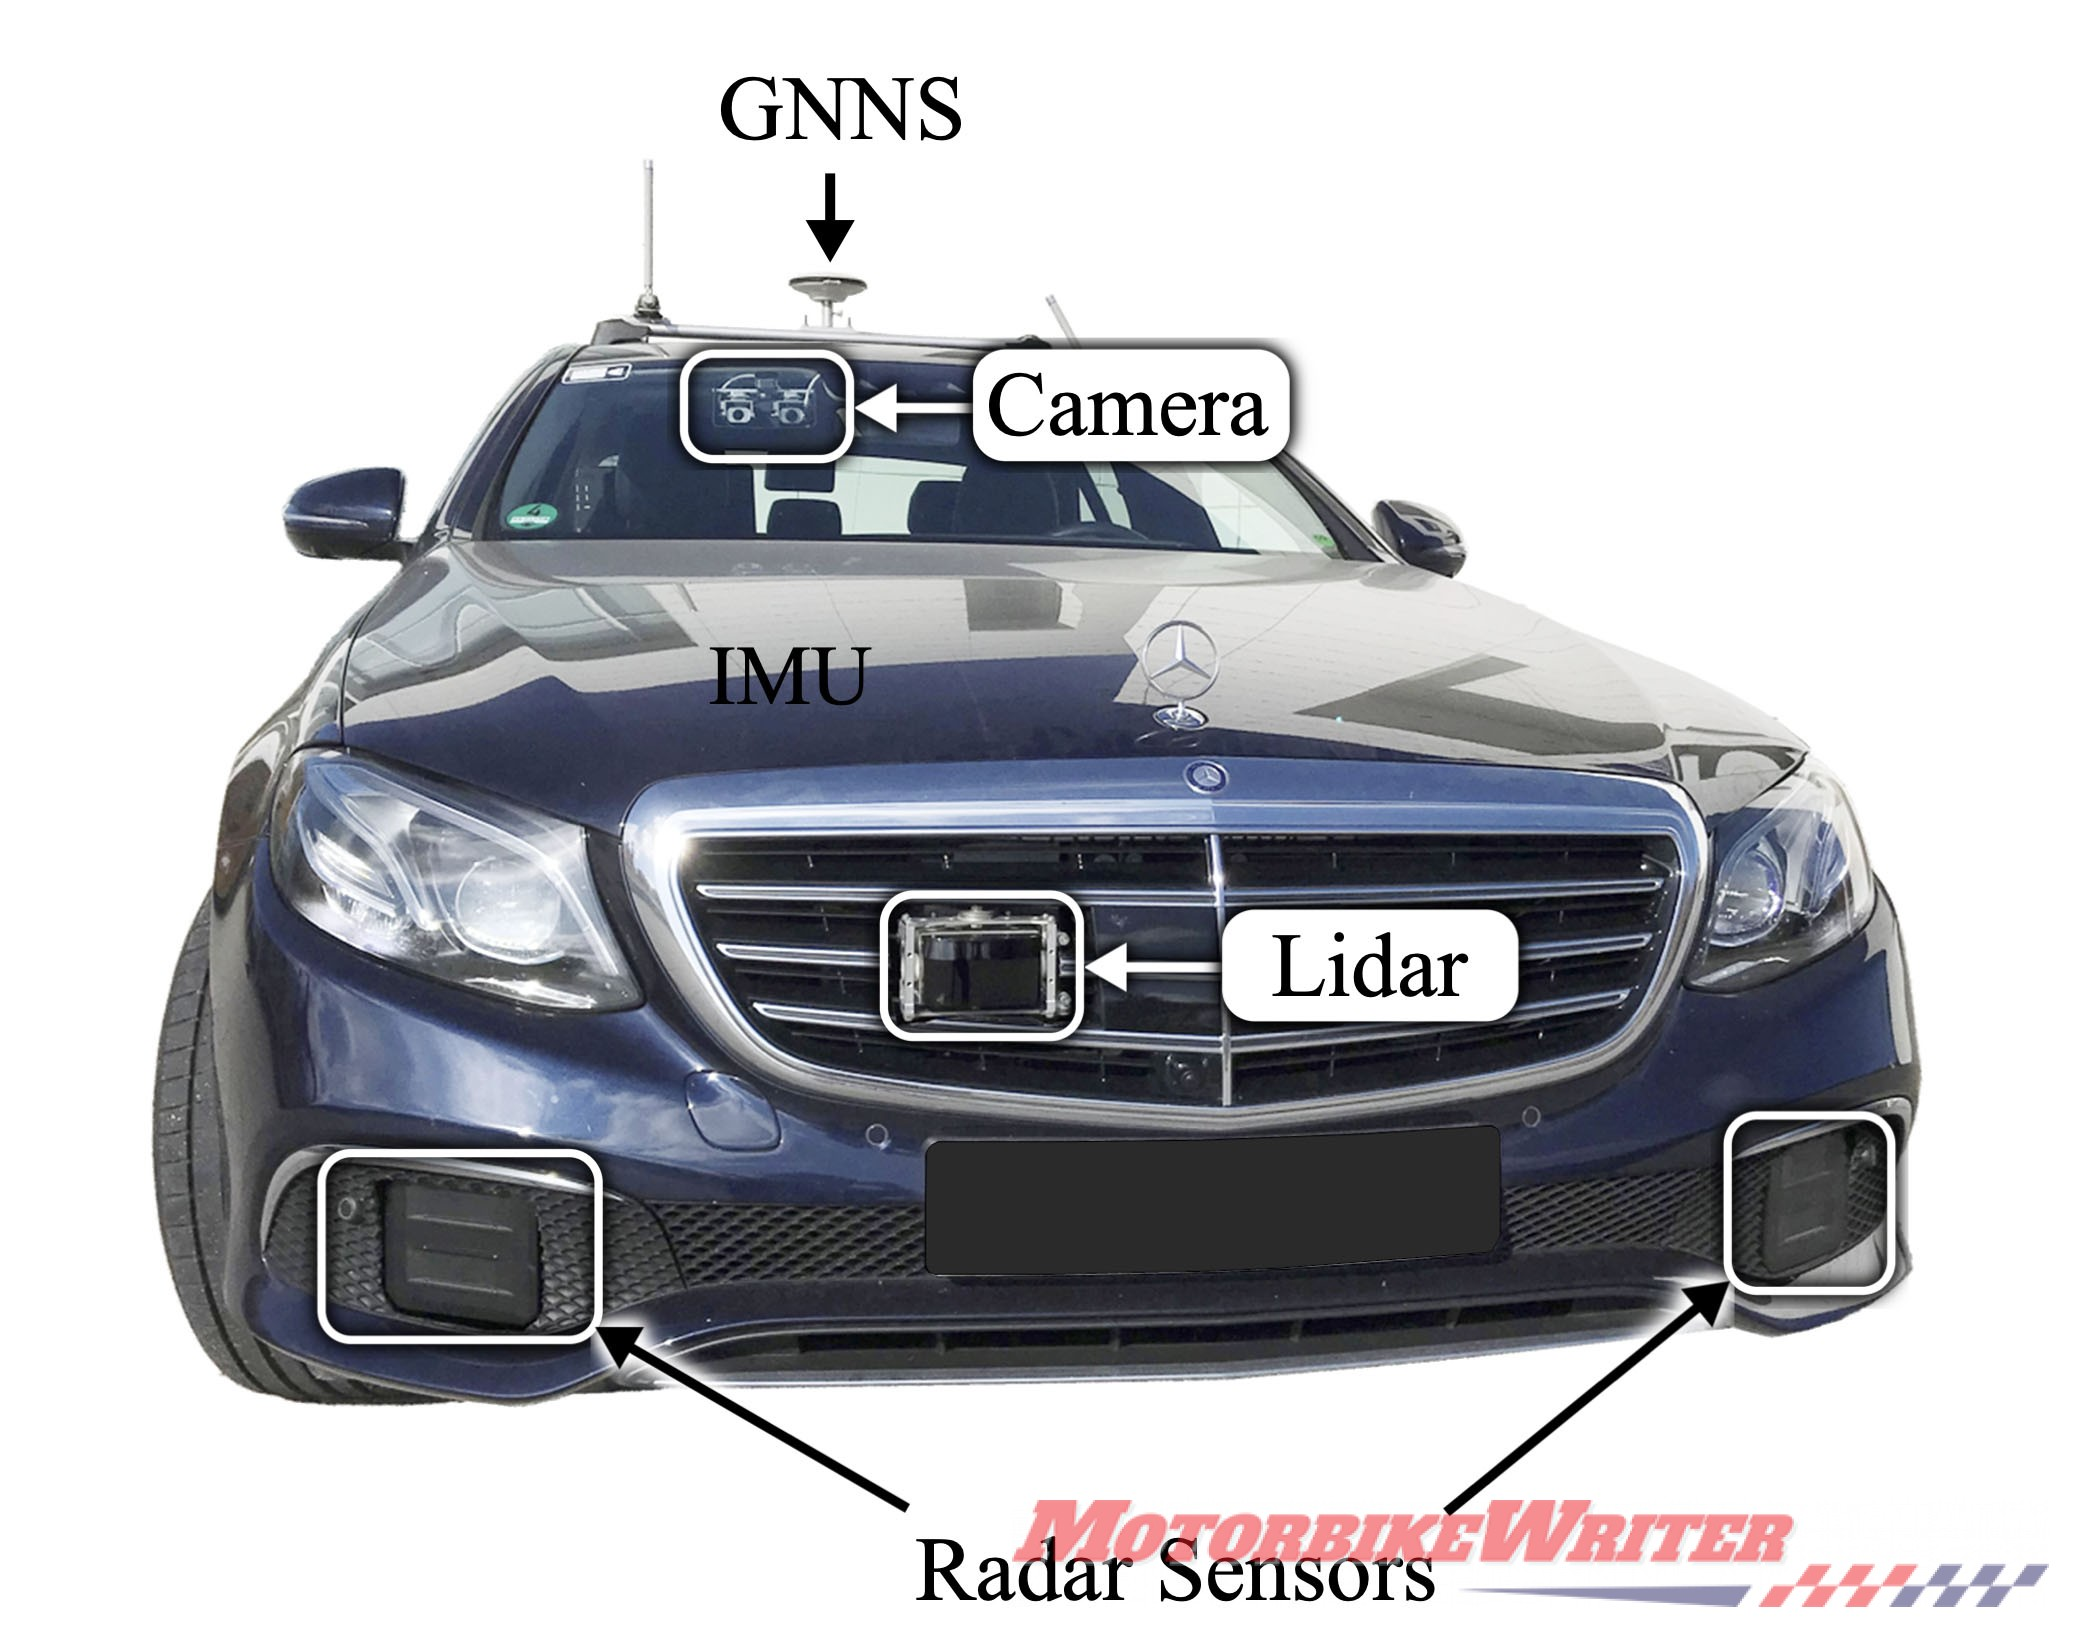 Princeton University is developing an automated radar system that will detect and alert drivers and riders of oncoming traffic and pedestrians around blind corners.